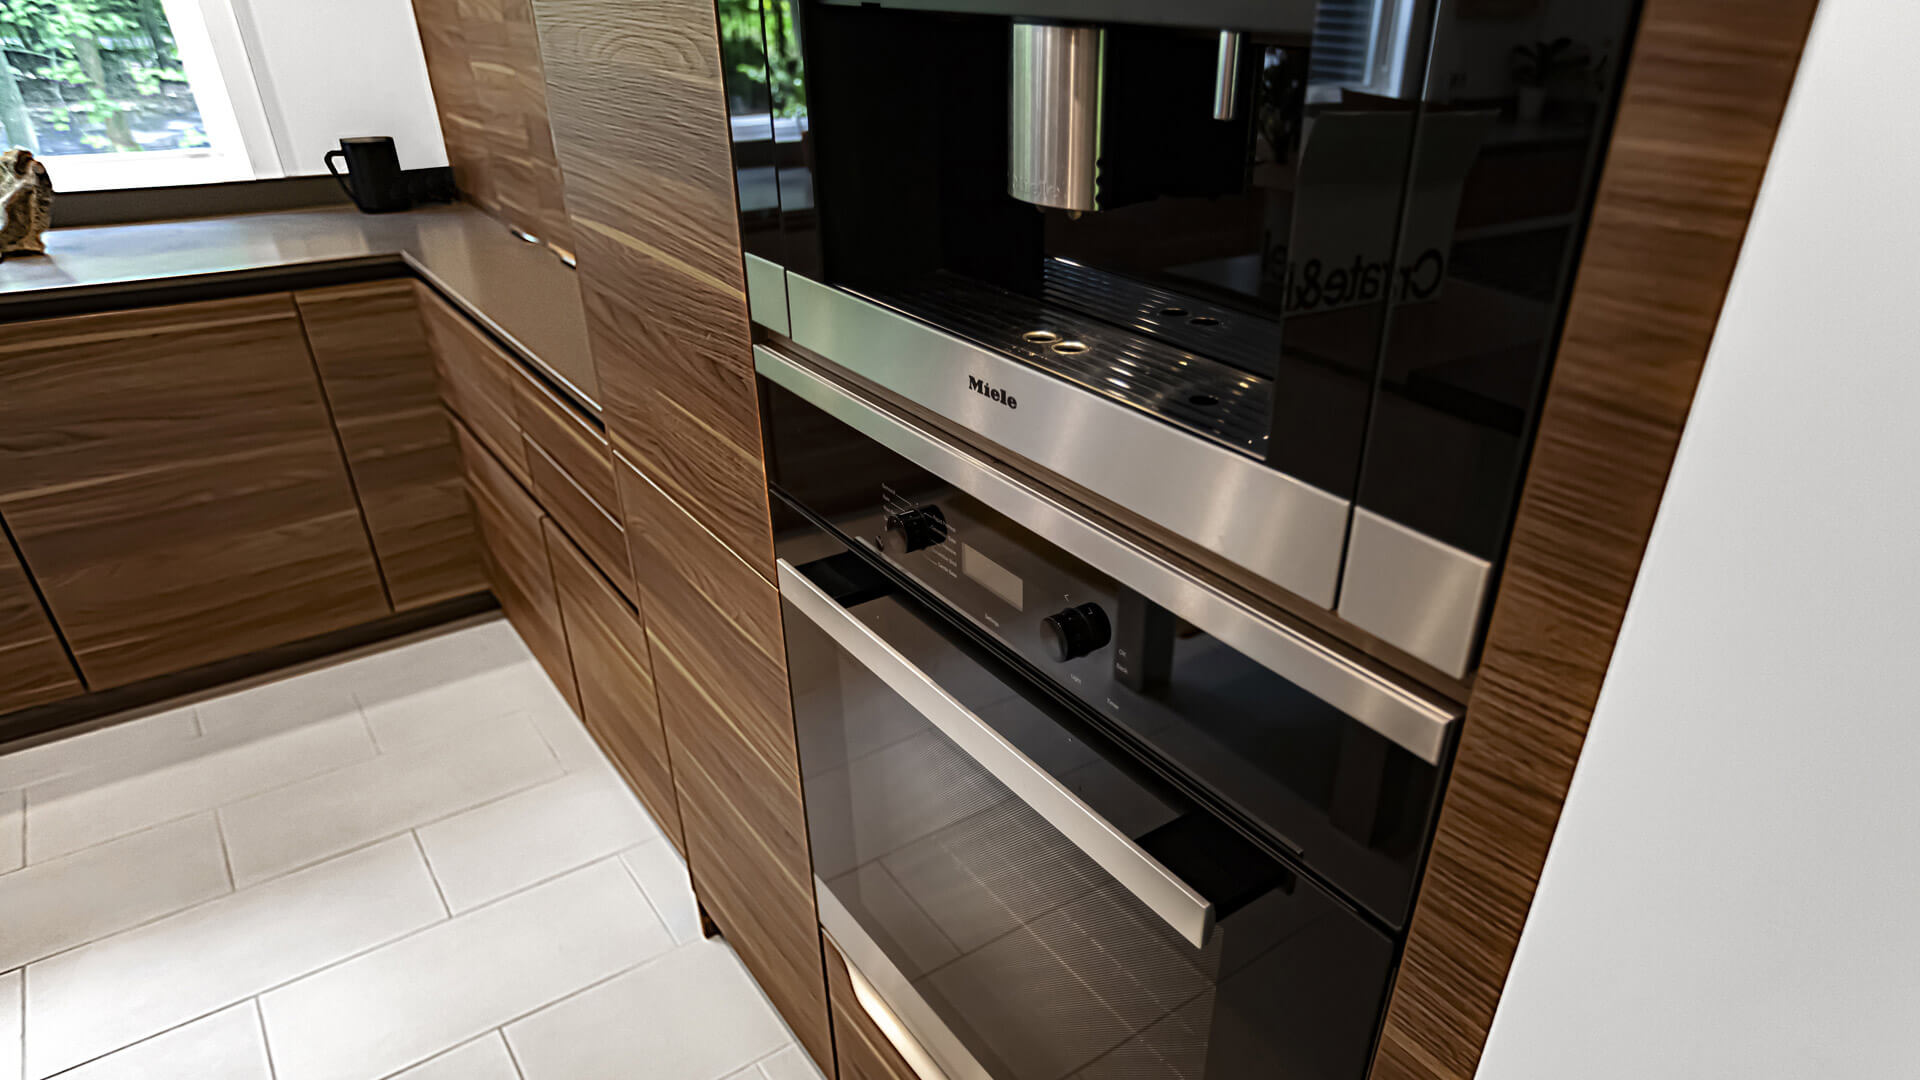 Miele Coffee Station + Wall Range Units integrate seamlessly into Leicht kitchen cabinetry - Bridge House - Fenneville, Michigan - Lake Michigan